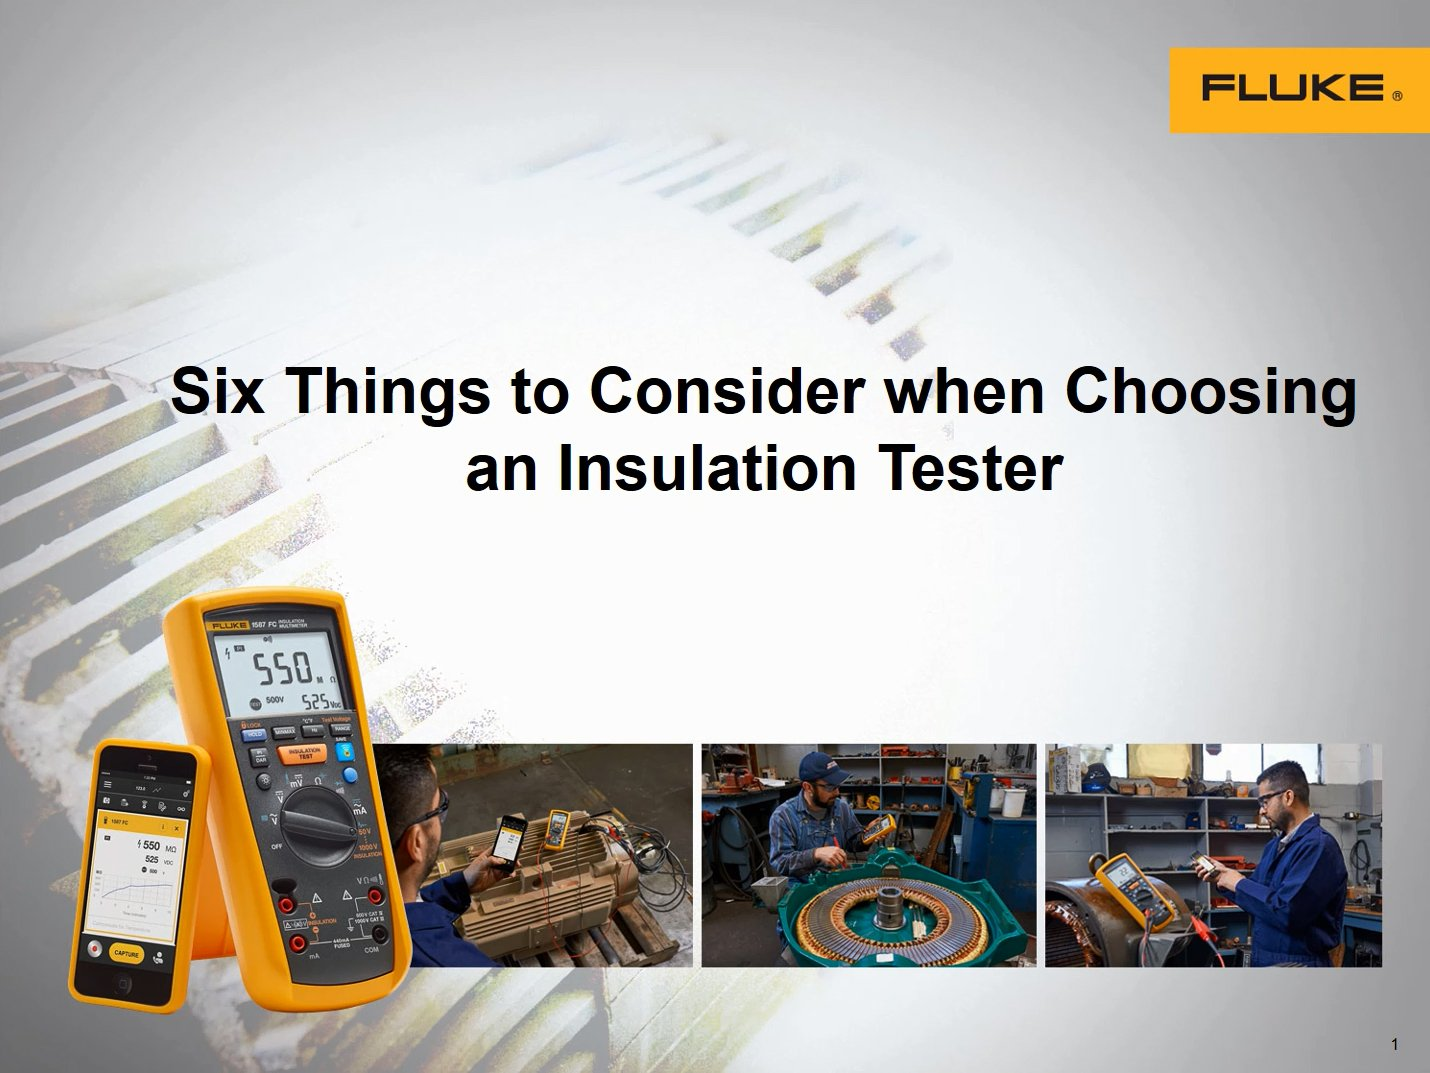 Fluke Training Library Demos Videos App Notes White Toggle Circuit Breaker Single Pole 30 Amp Blue Sea Systems